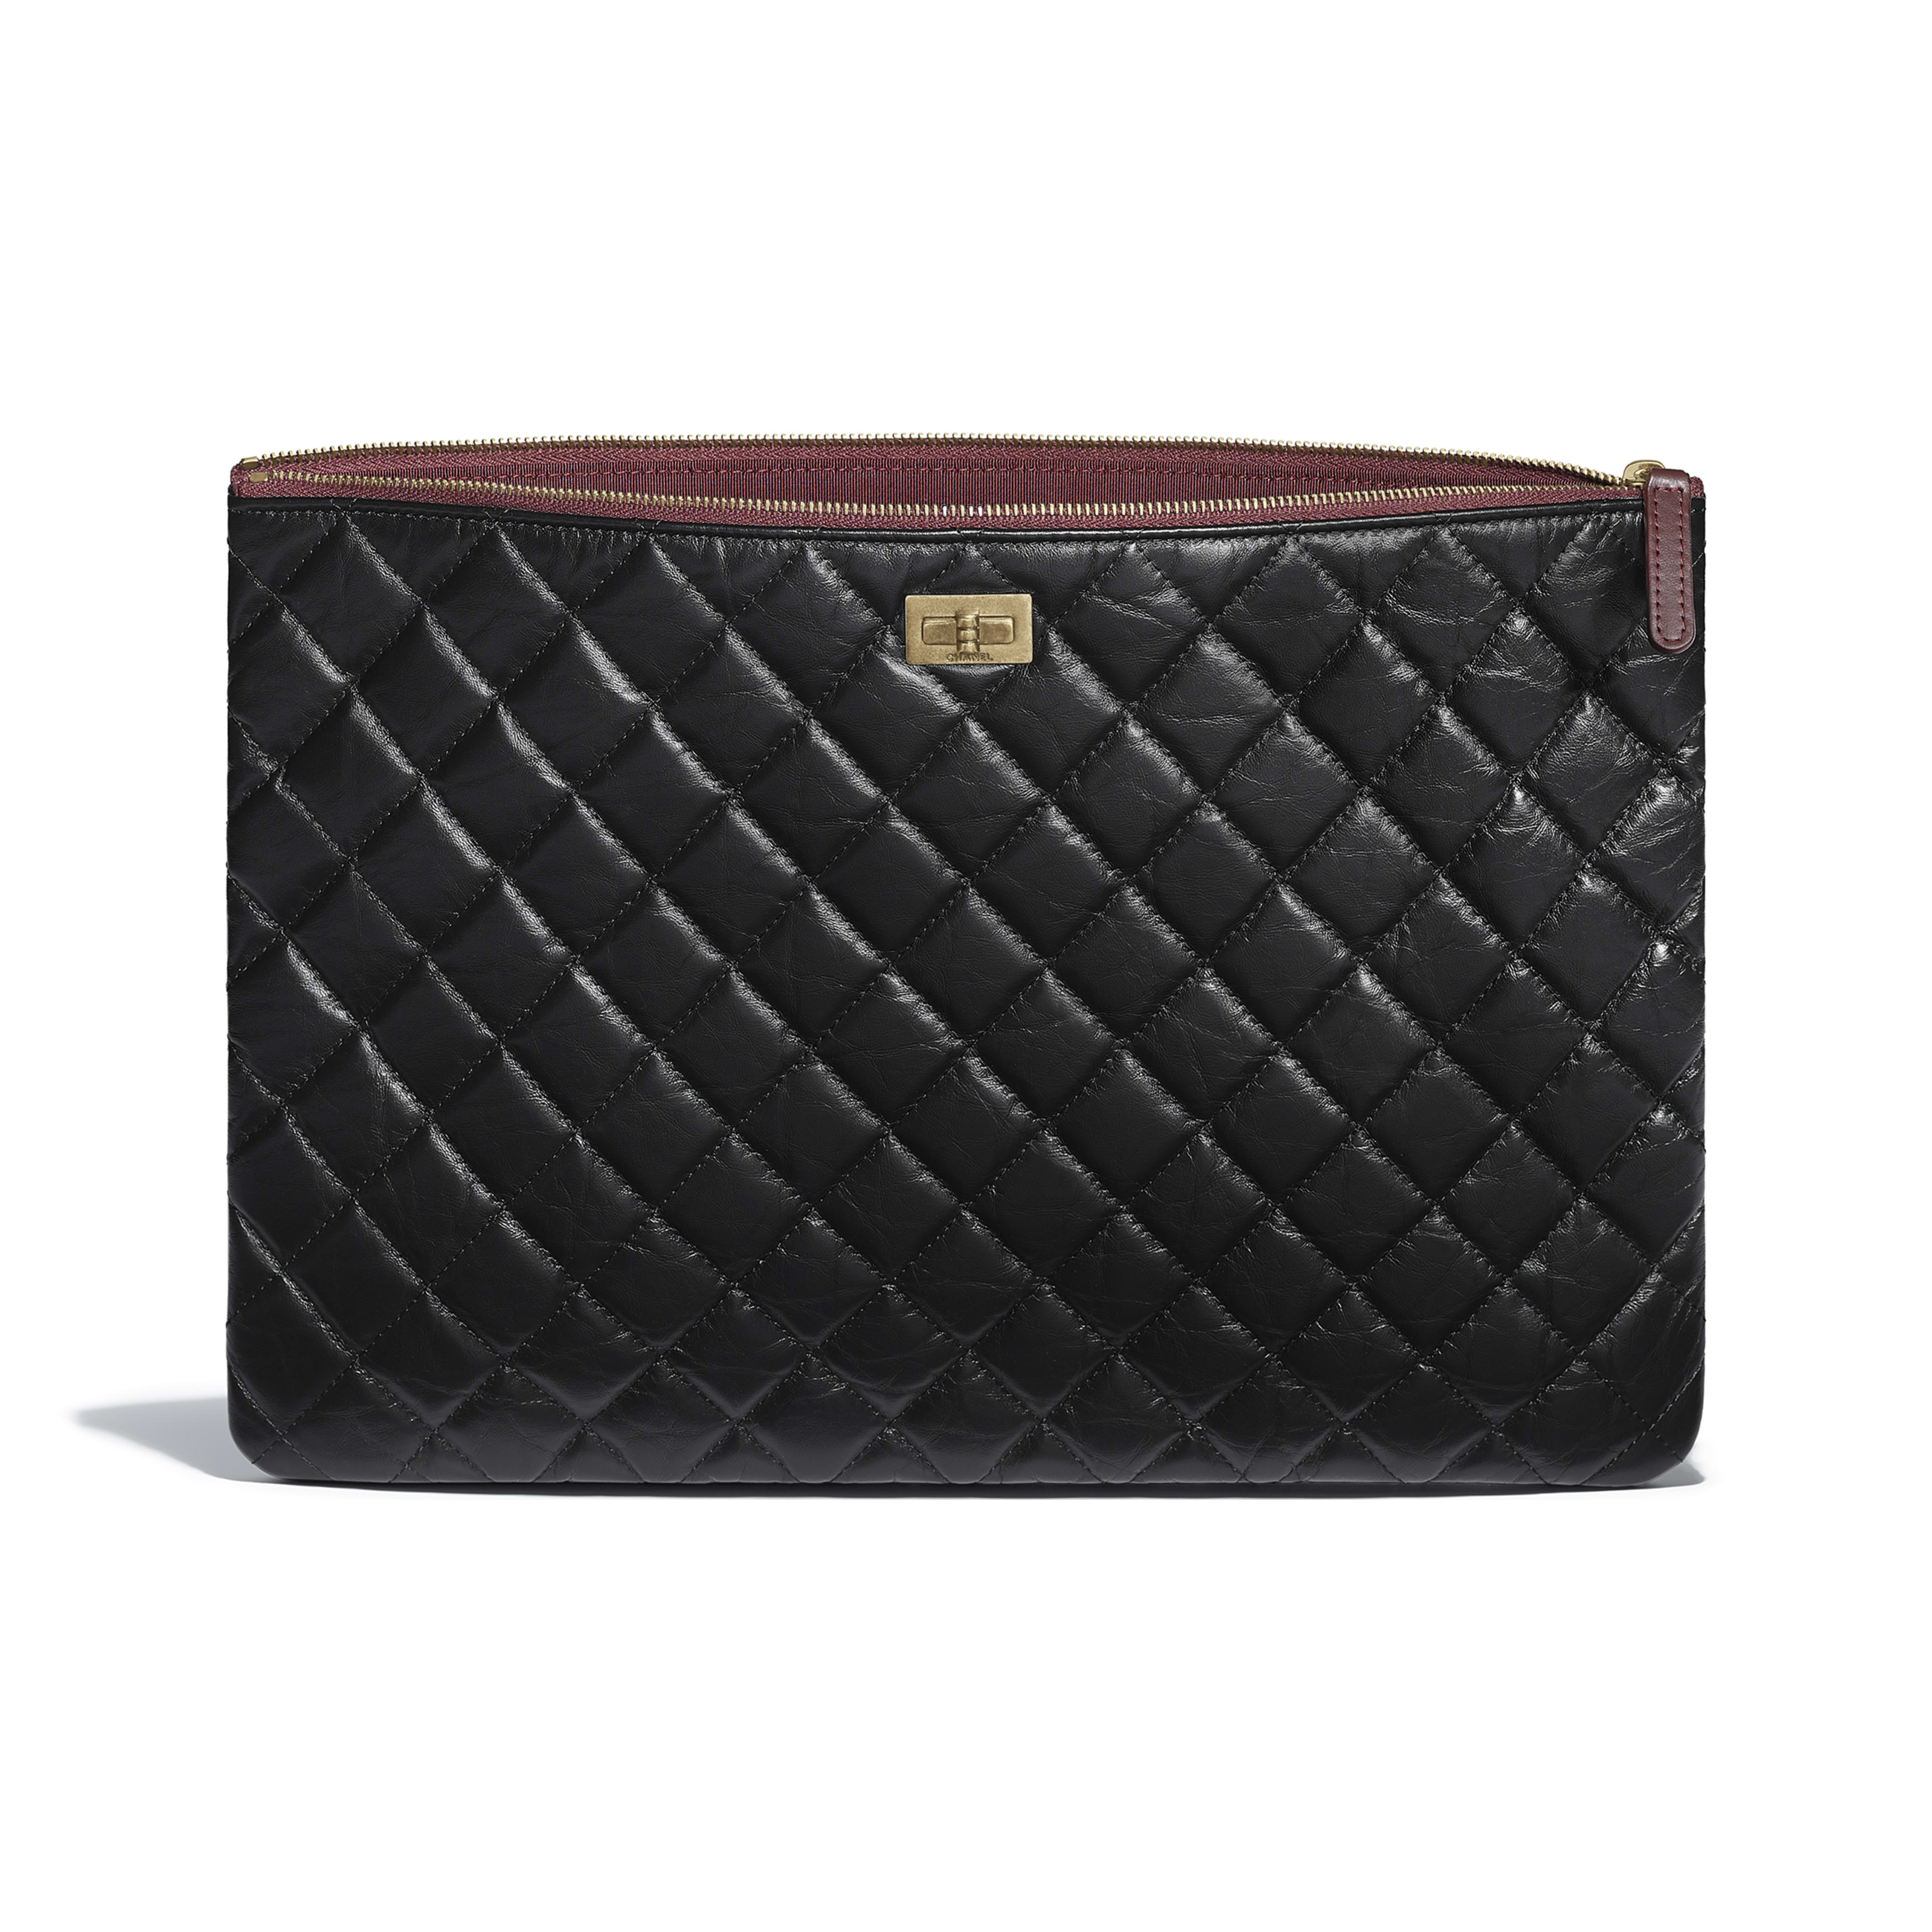 Large 2.55 Pouch - Black - Aged Calfskin & Gold-Tone Metal - Other view - see full sized version